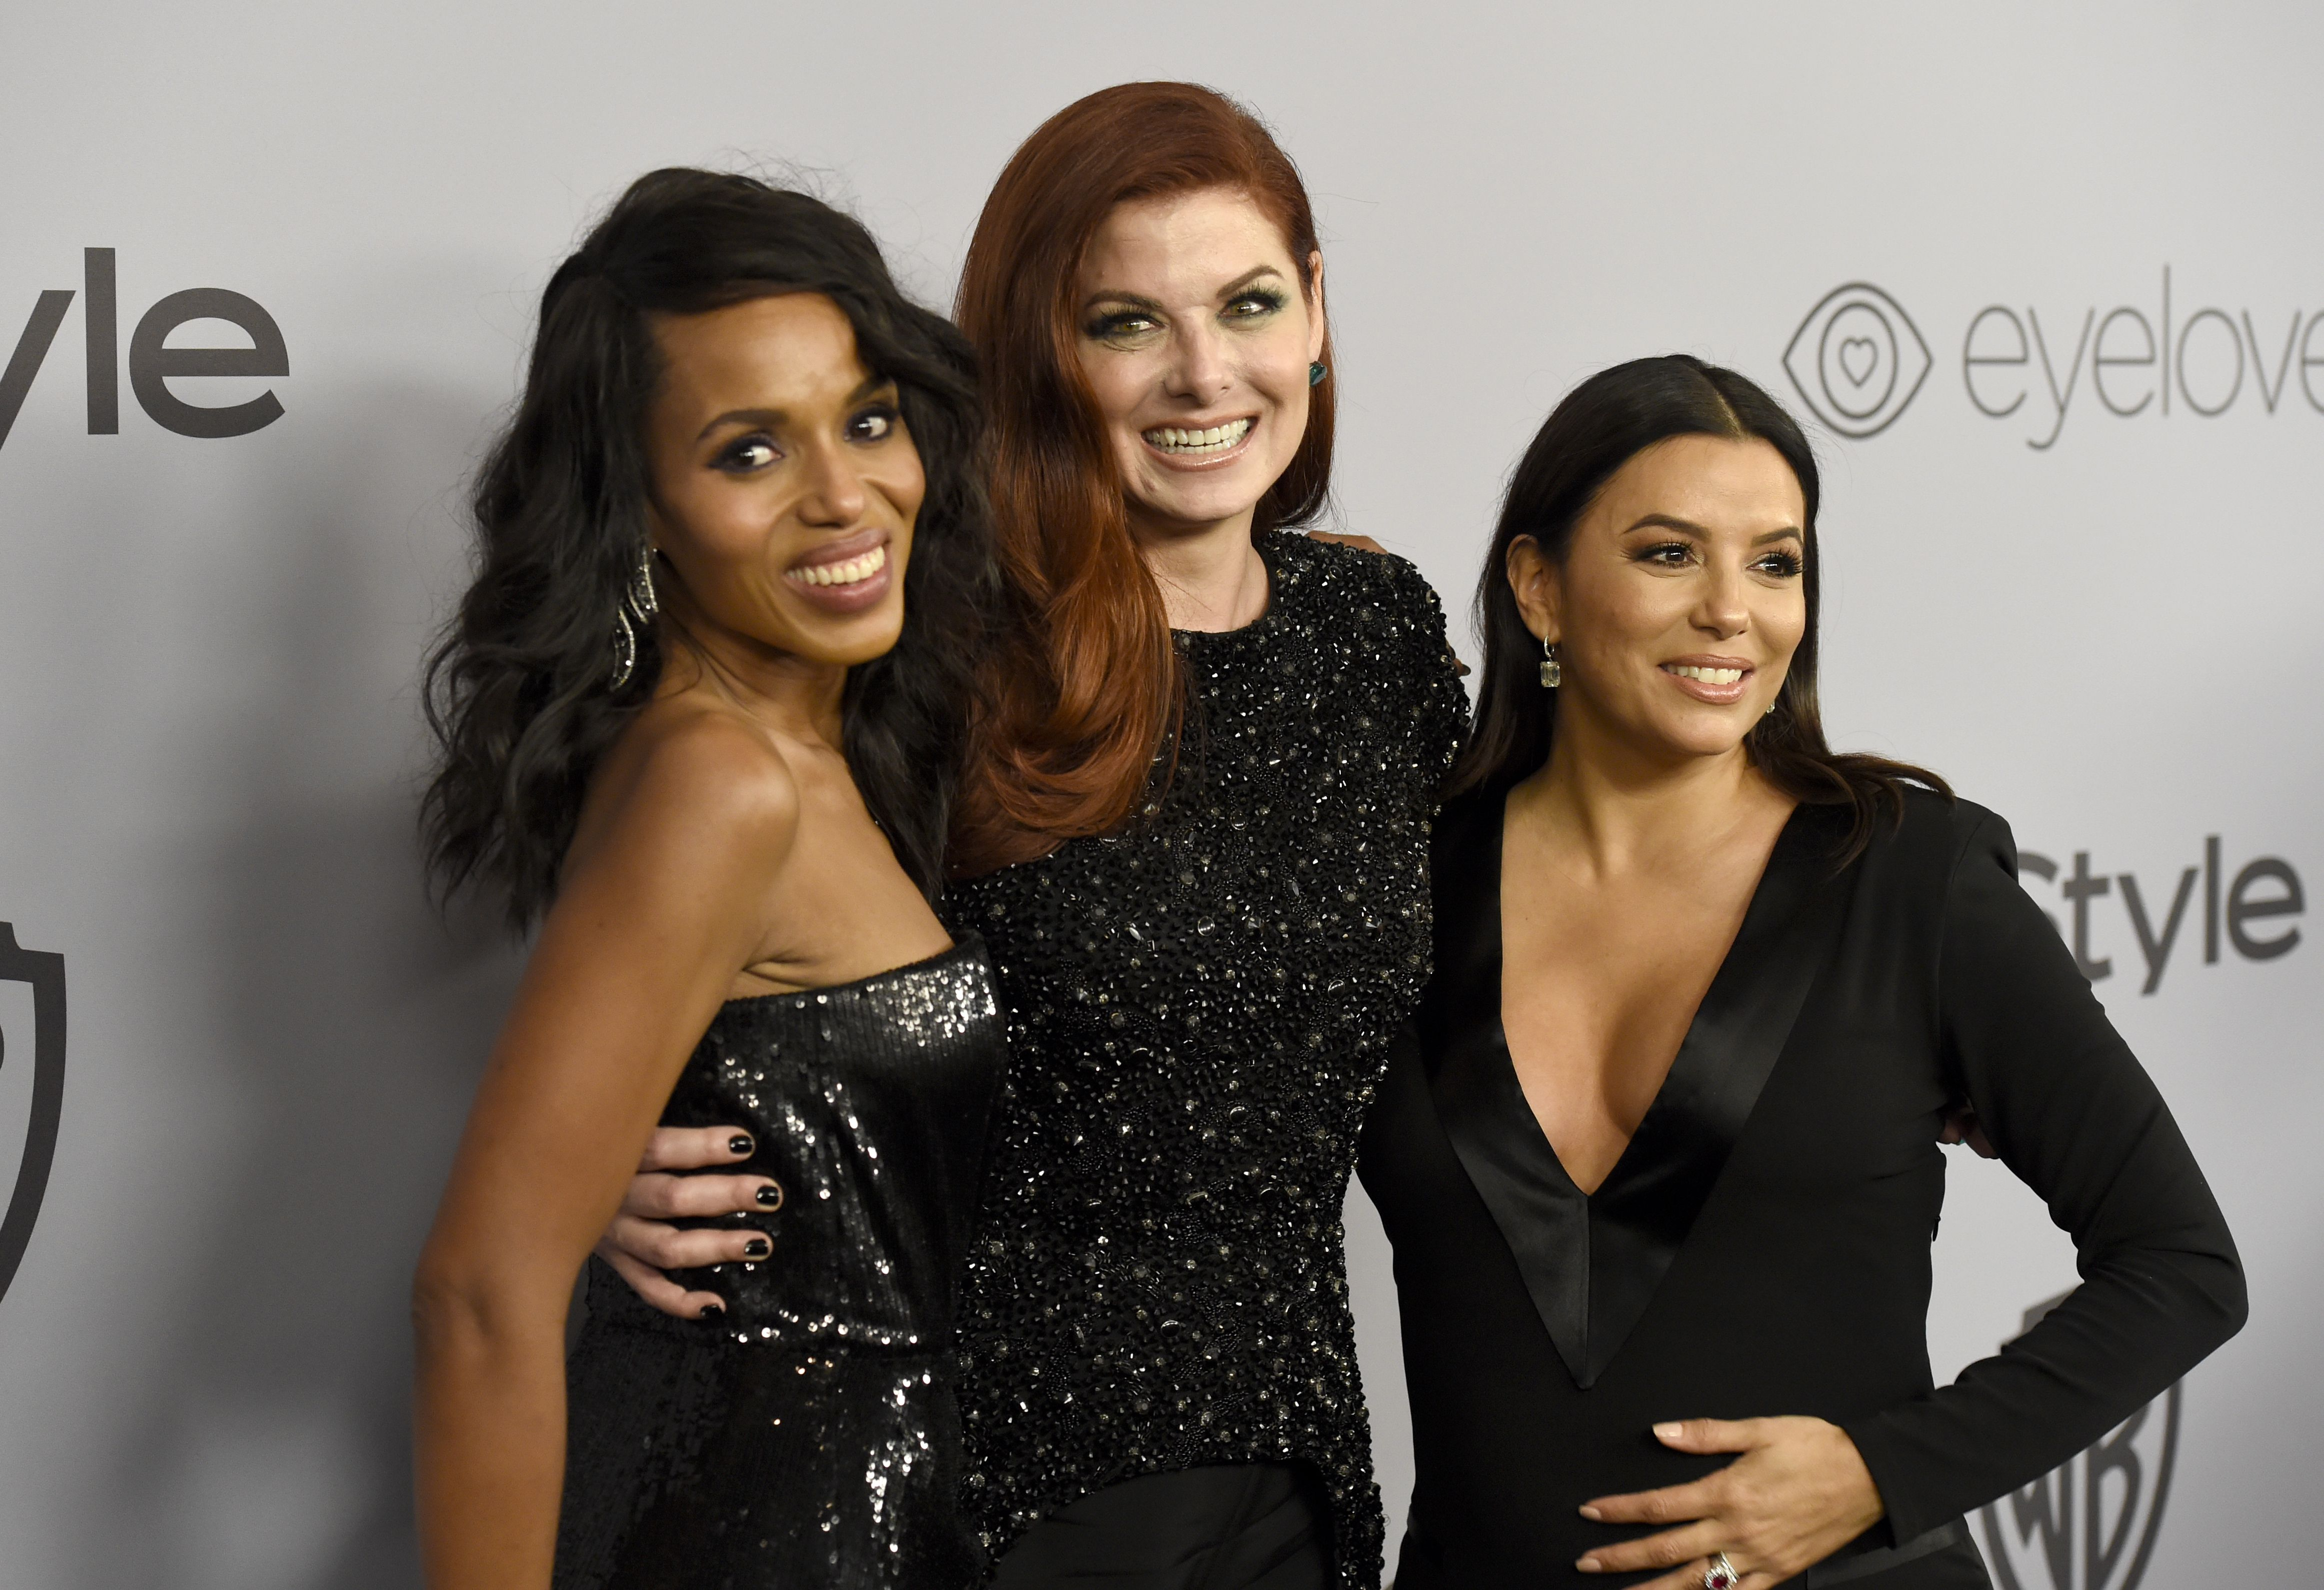 Kerry Washington, Debra Messing, Eva Longoria. Kerry Washington, from left, Debra Messing, and Eva Longoria arrive at the InStyle and Warner Bros. Golden Globes afterparty at the Beverly Hilton Hotel, in Beverly Hills, Calif75th Annual Golden Globe Awards - InStyle and Warner Bros. Afterparty, Beverly Hills, USA - 07 Jan 2018